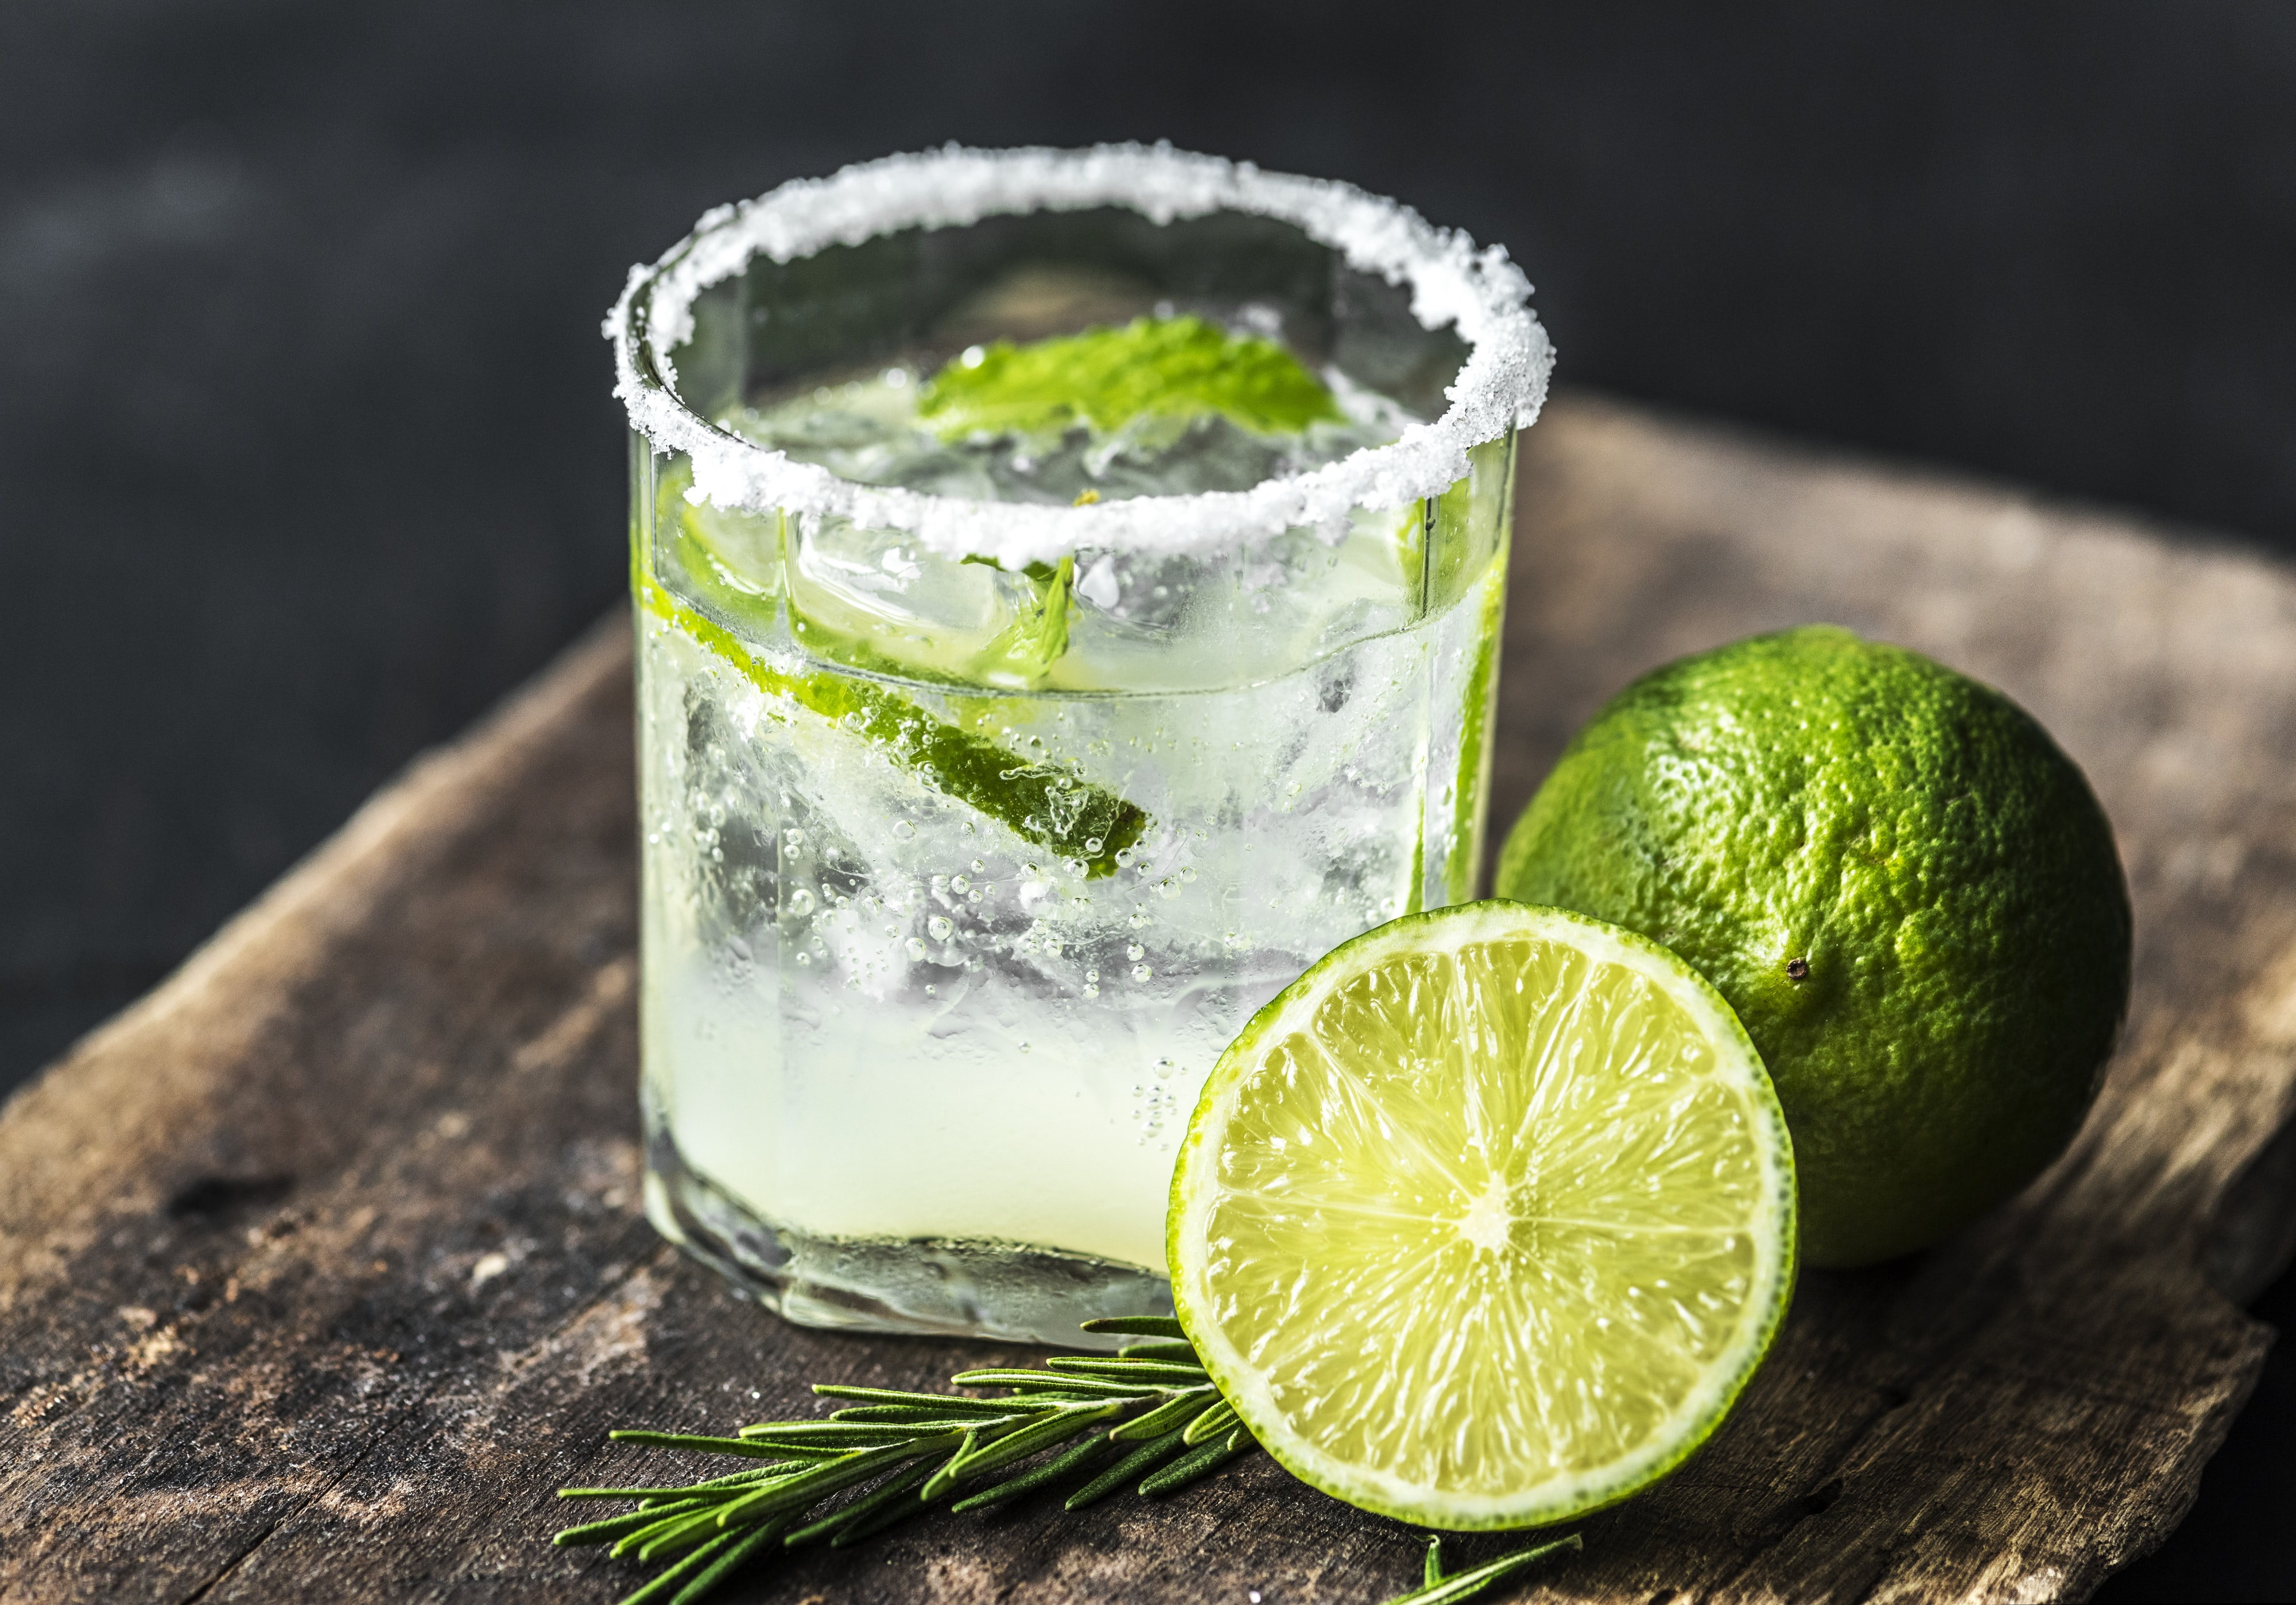 clear glass cup filled with clear liquid beside green lemons